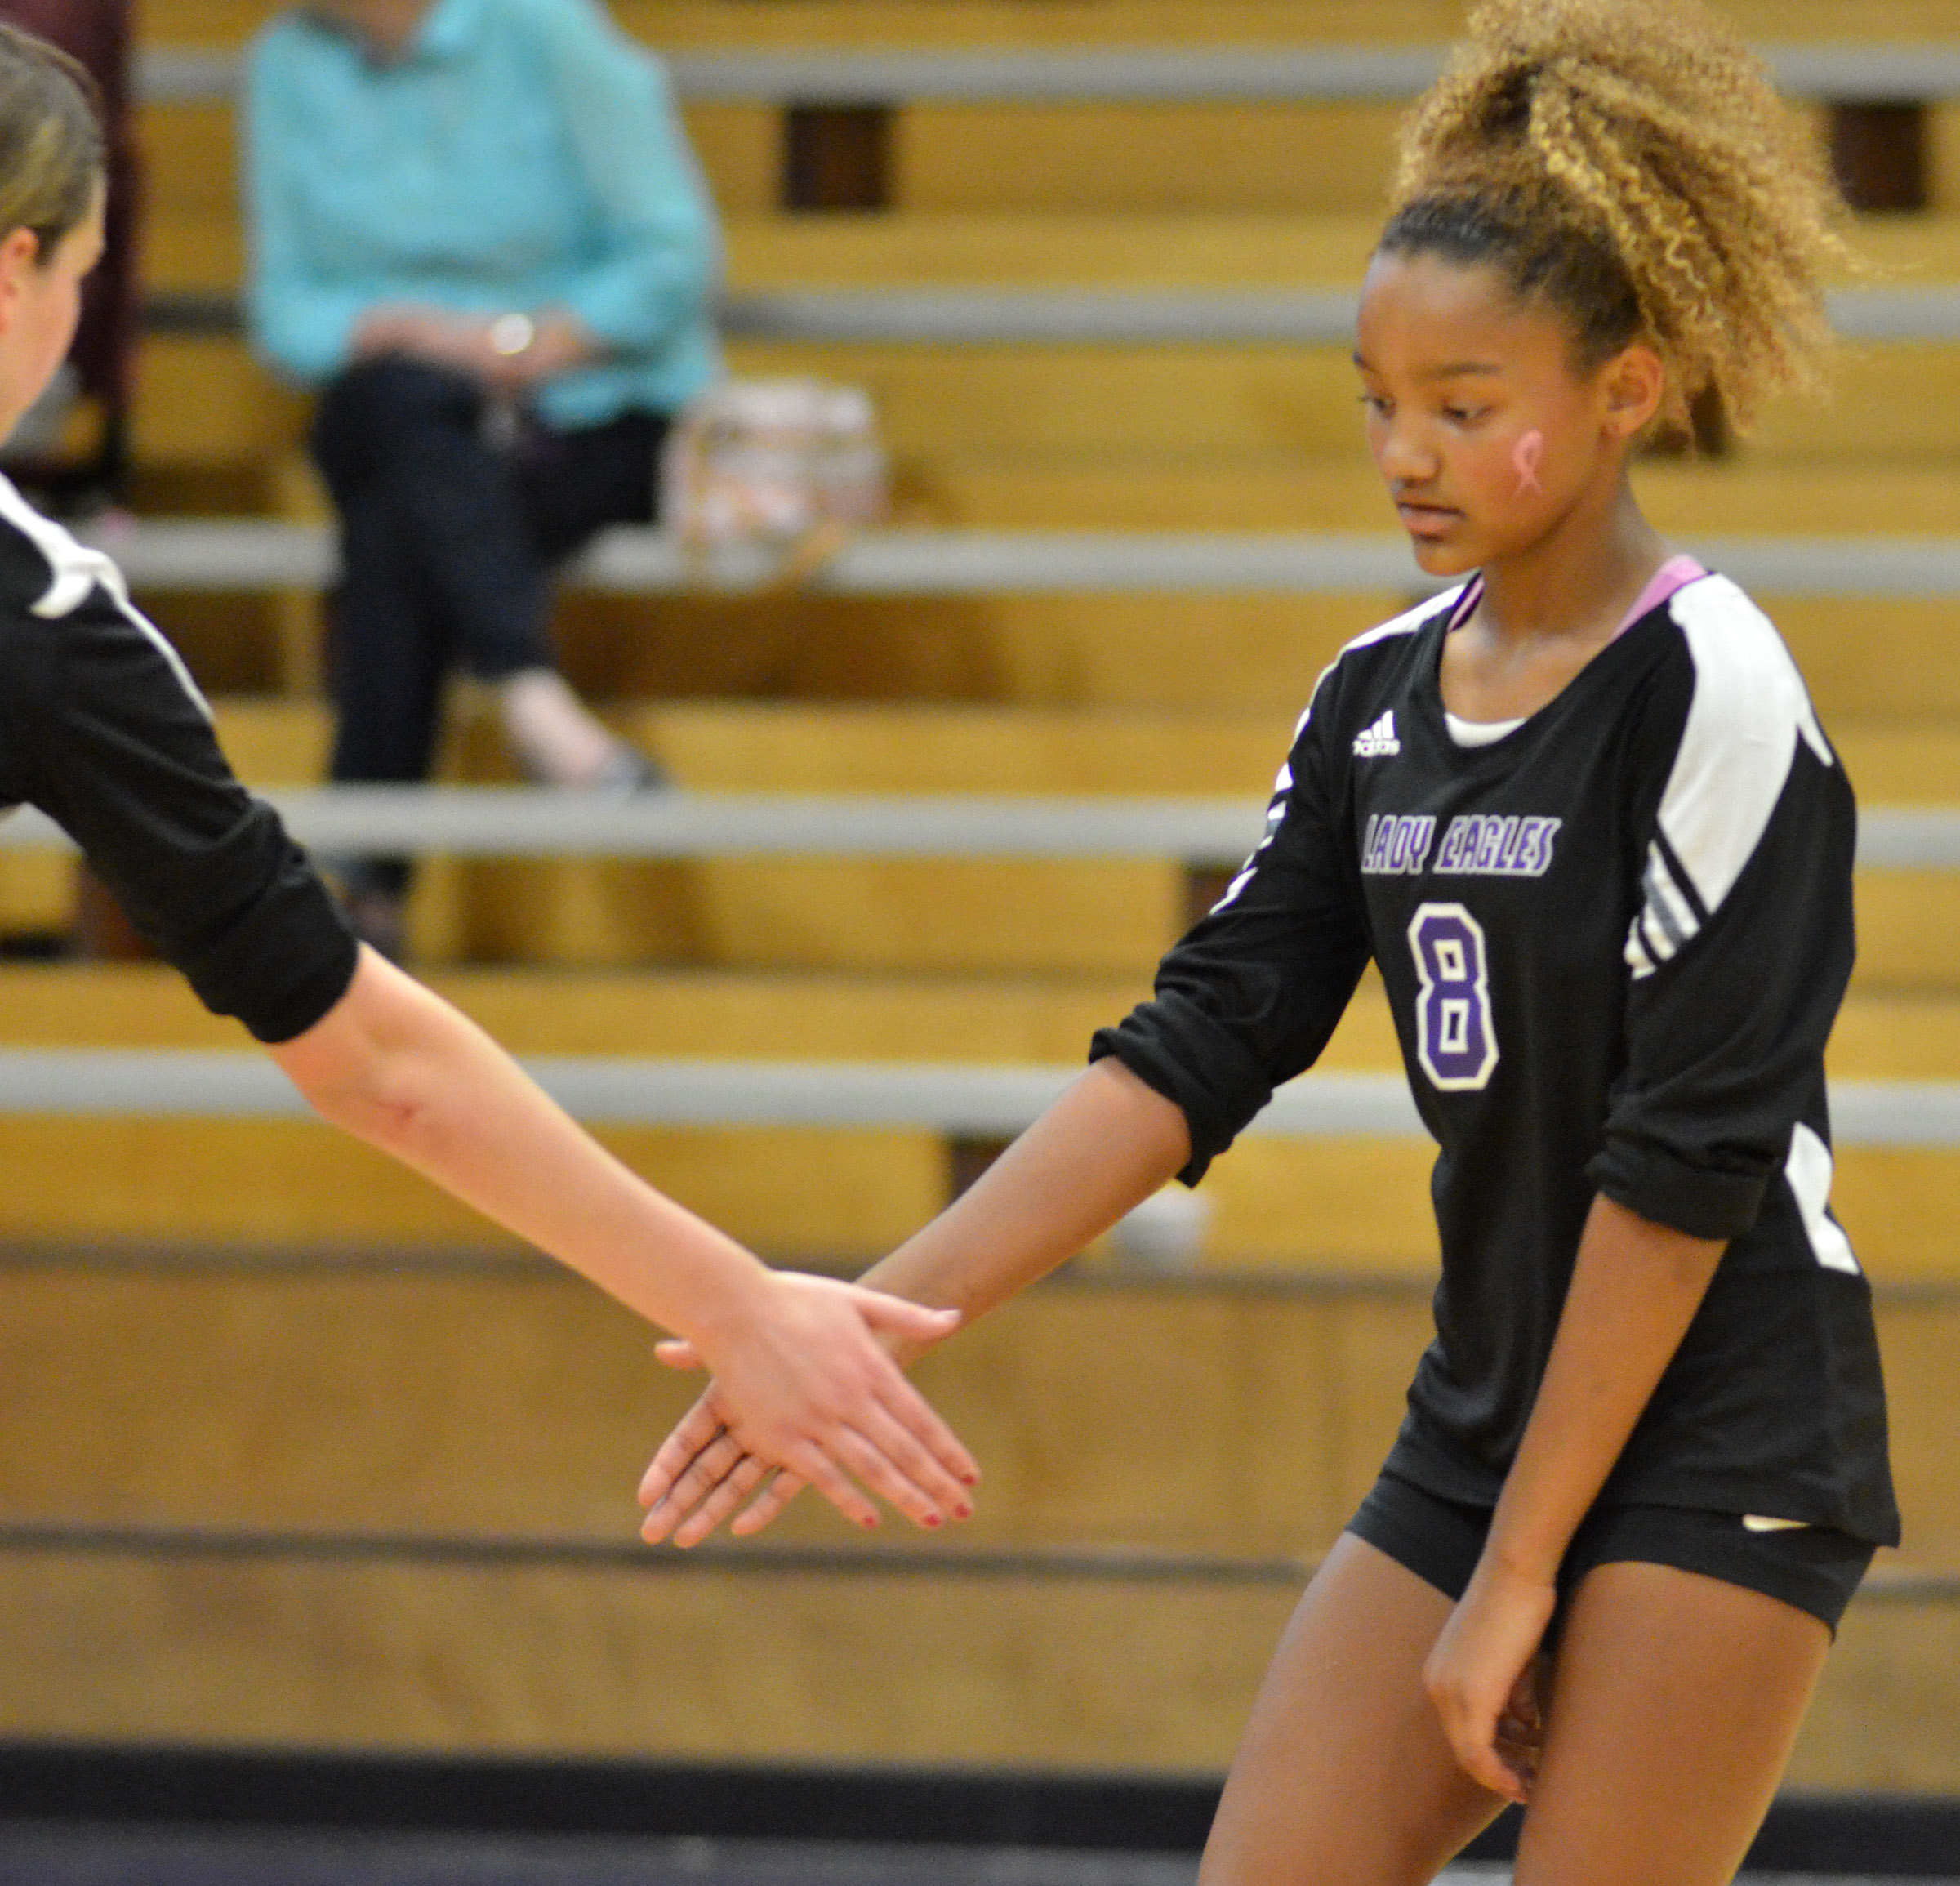 Campbellsville Middle School eighth-grader Alexis Thomas high-fives a teammate.